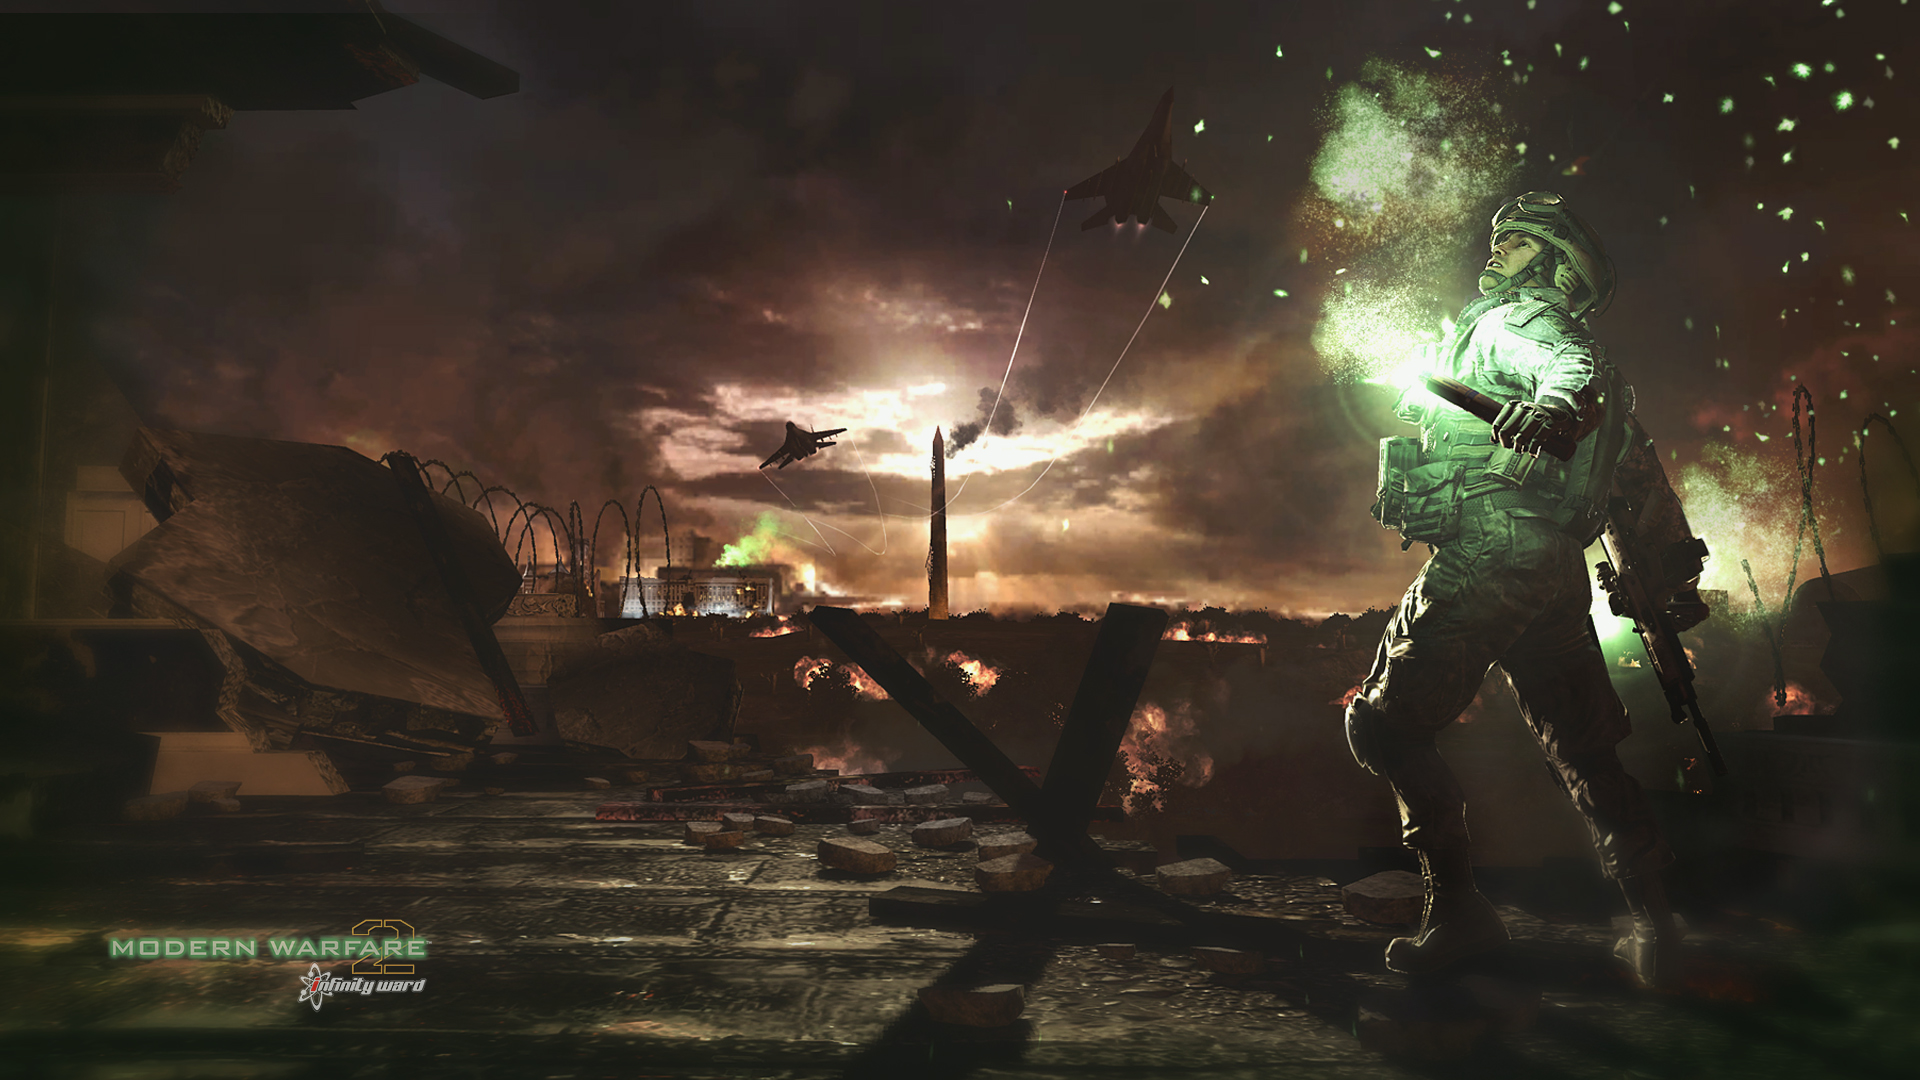 Nighttime Warzone Wallpaper   Modern Warfare 2 Wallpaper Hd 1920x1080